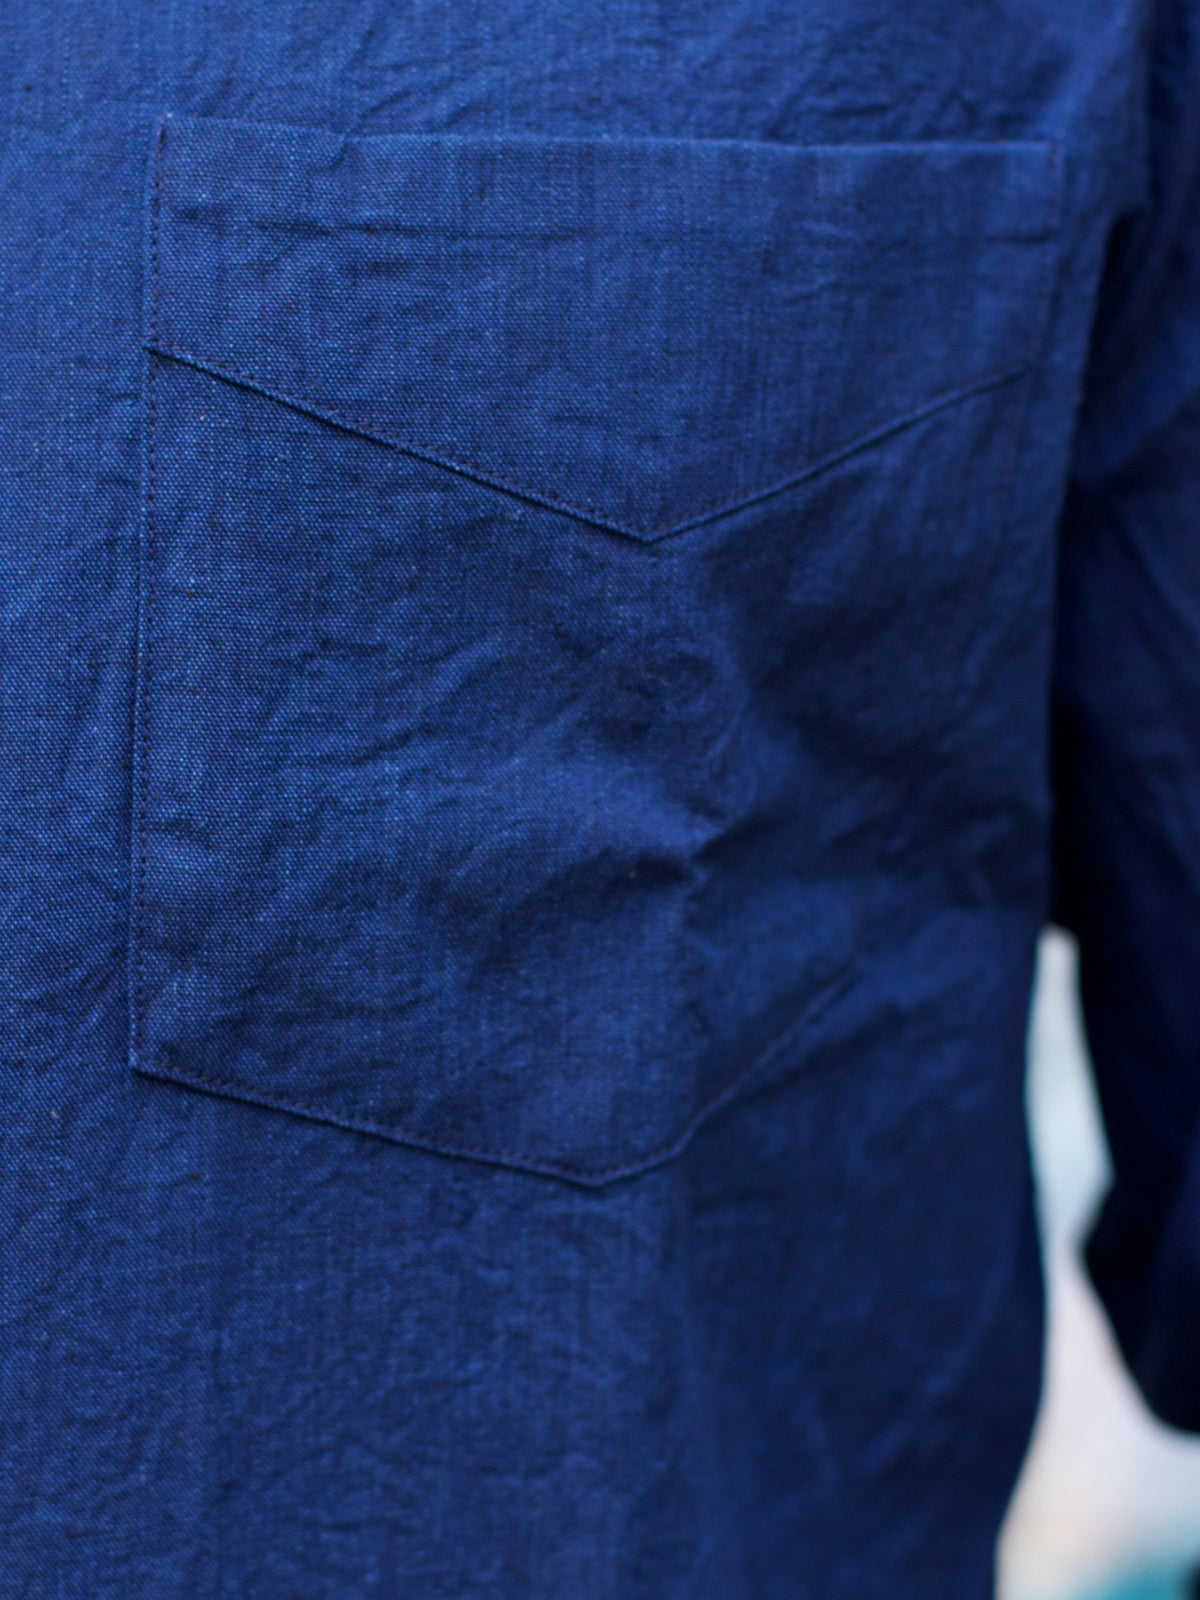 Japan Blue J350323 Buono Shirt Indigo Chambray